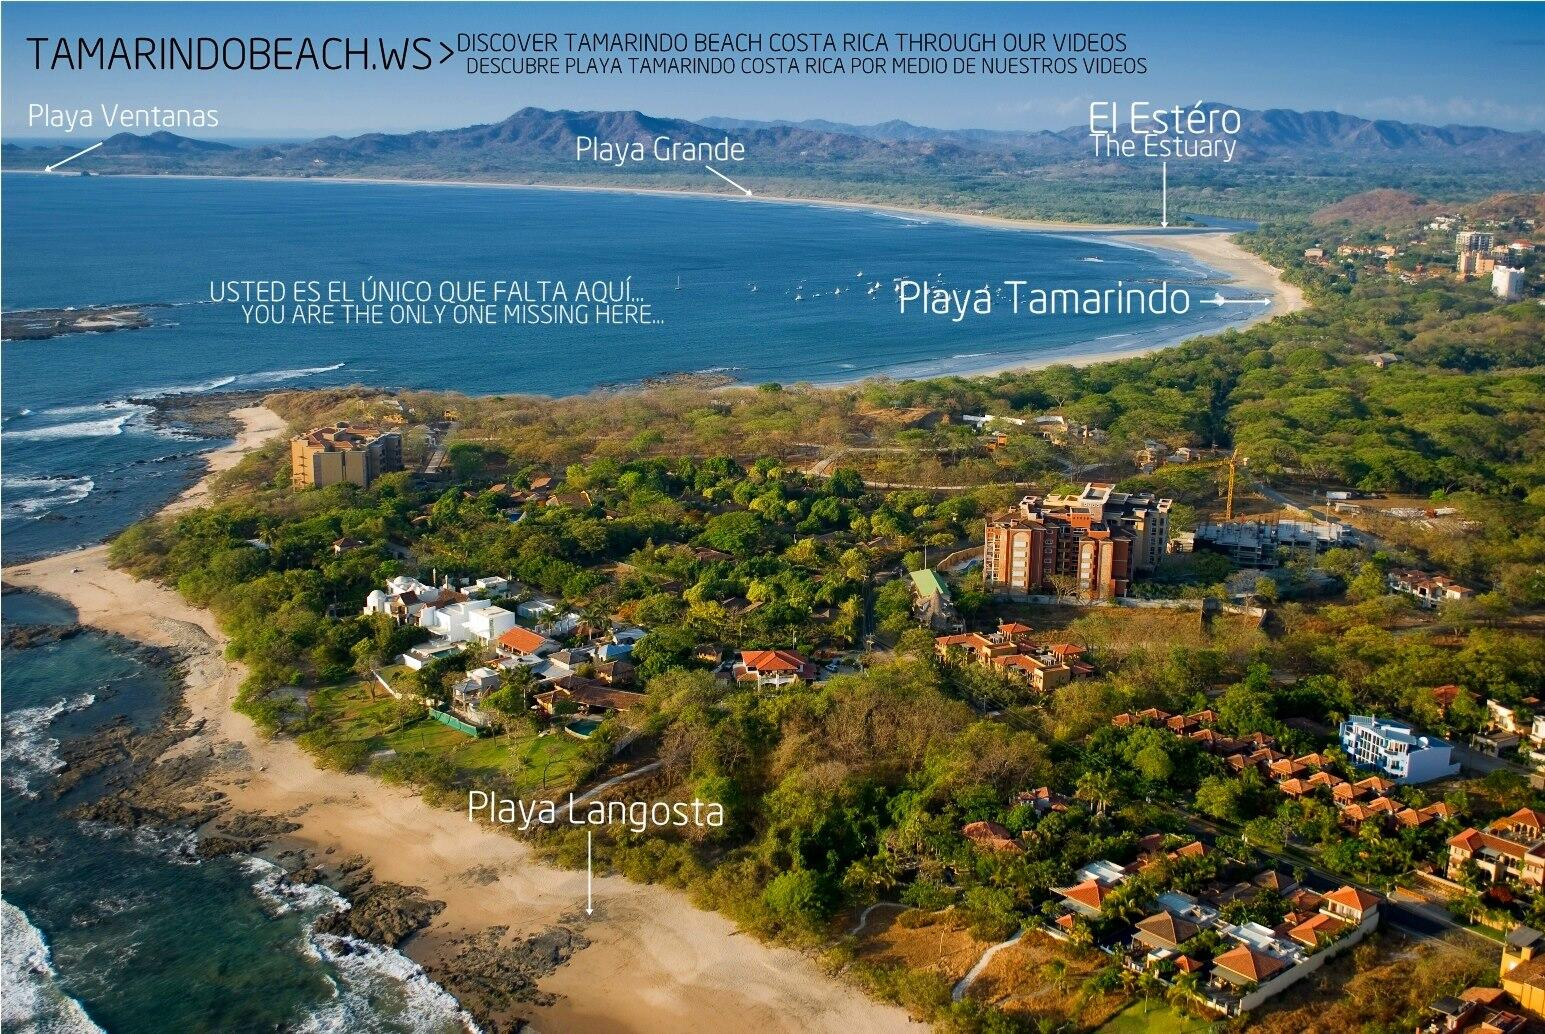 Tamarindo Costa Rica  City new picture : ... videos the bea ch of tamarindo costa rica pic twitter com yytnqfp4uc